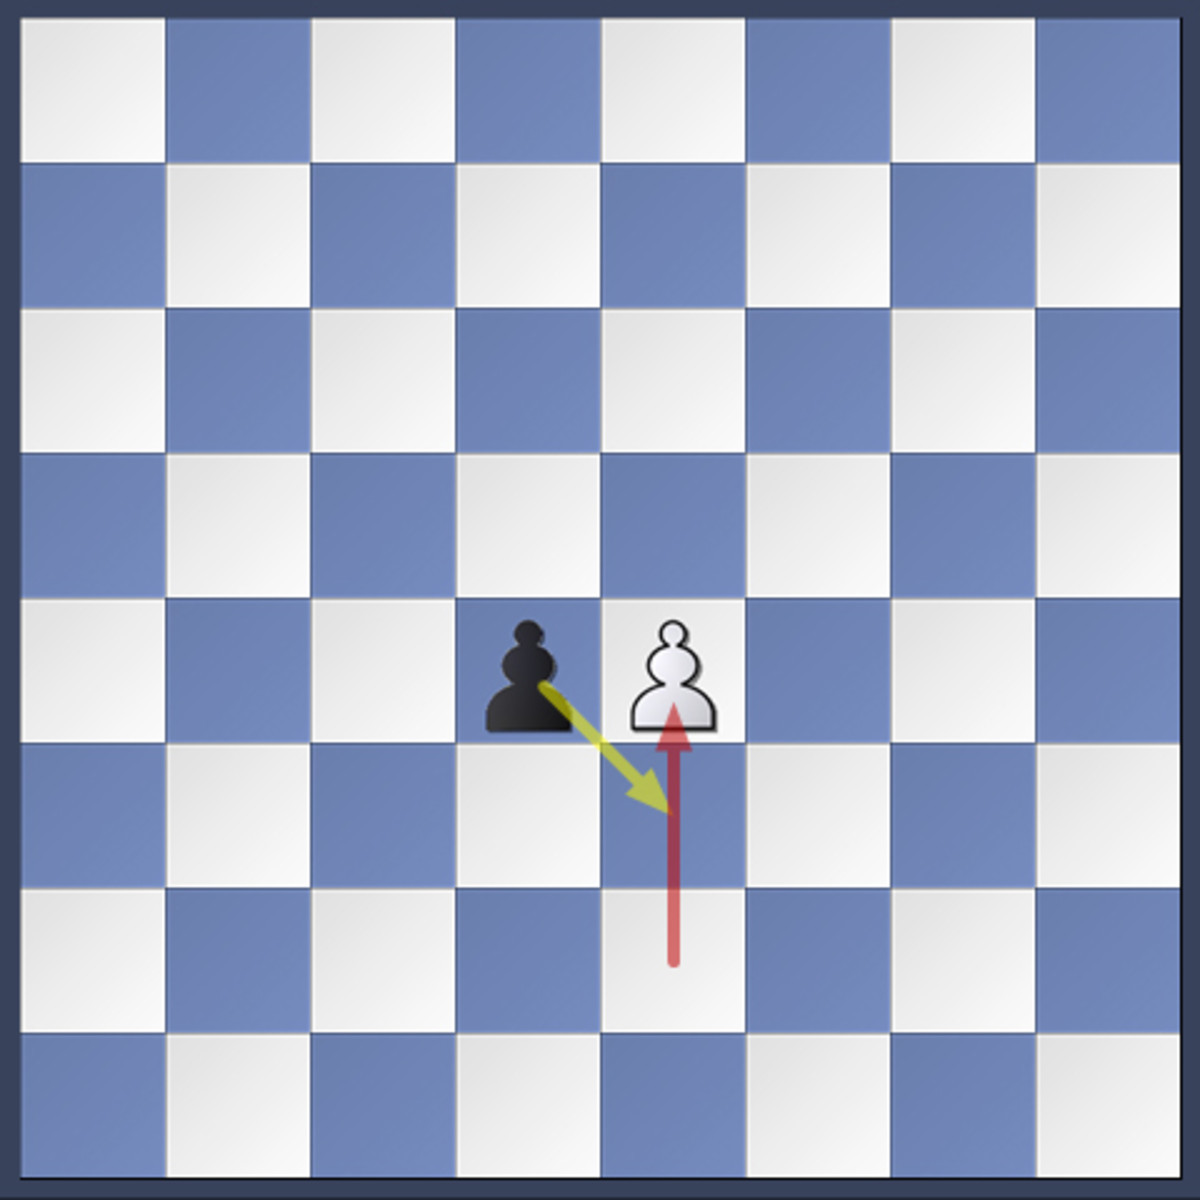 White has just moved his pawn two squares forward. The black pawn can capture it en passant.